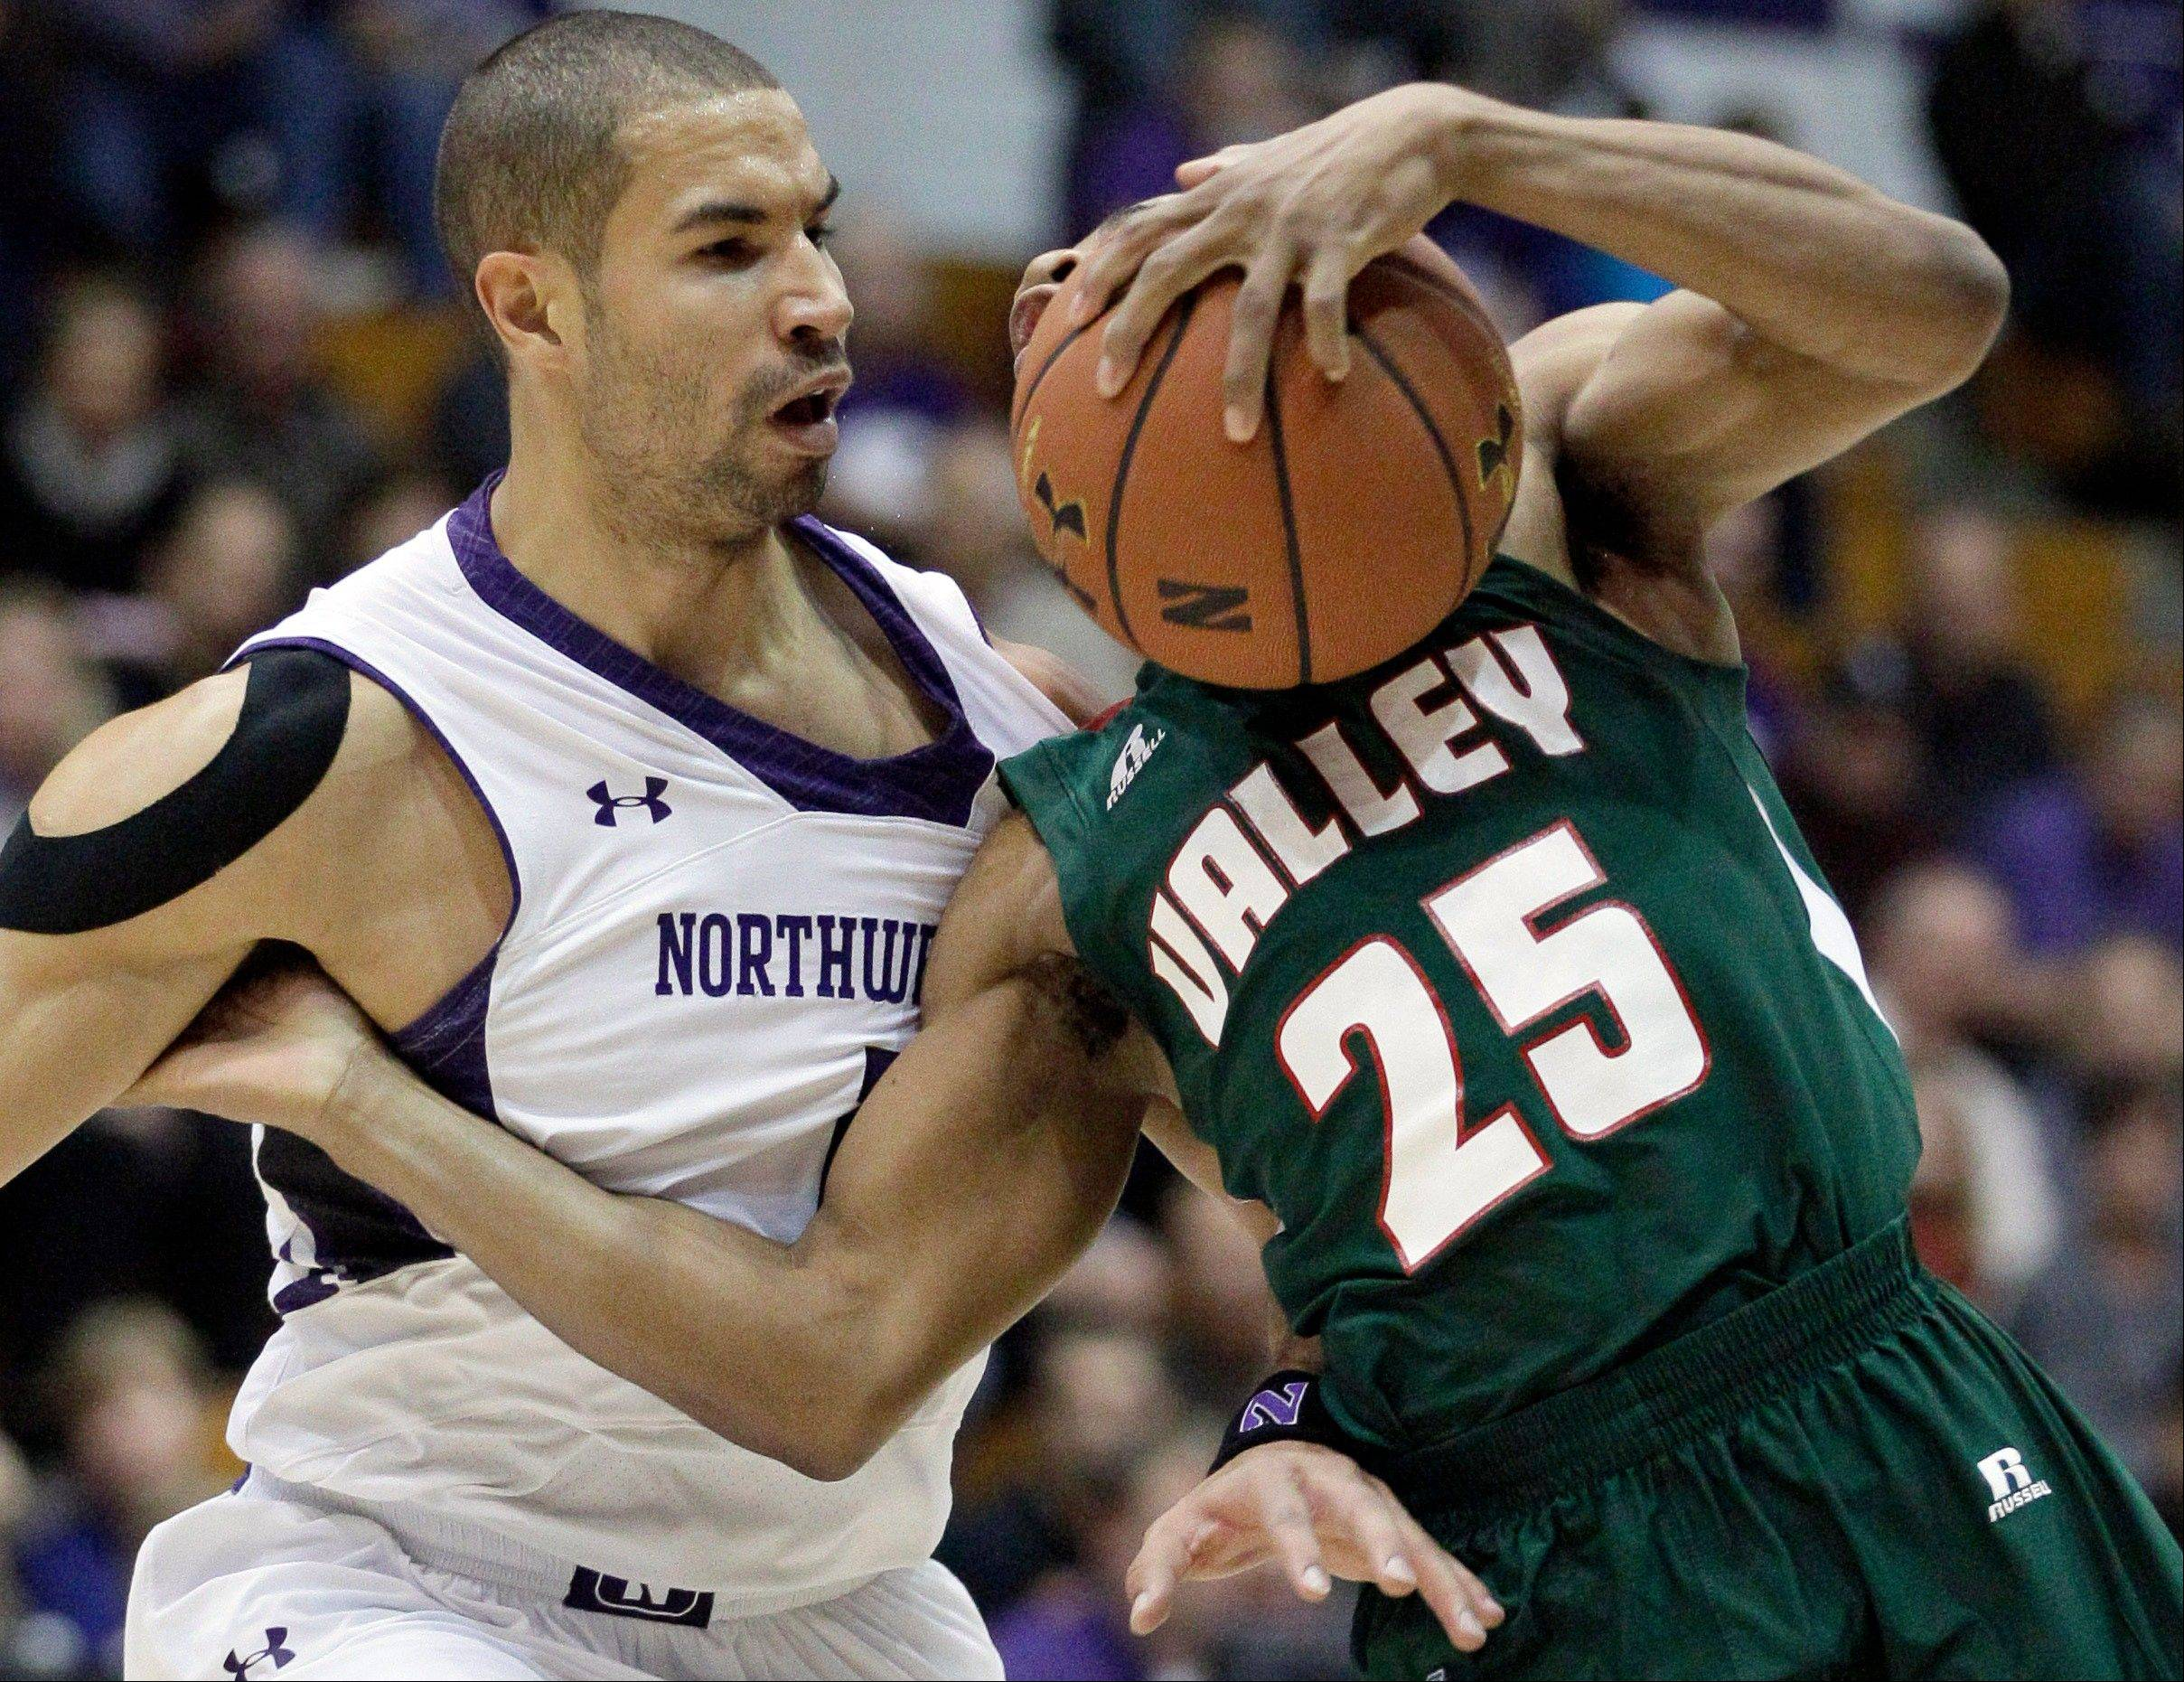 Northwestern forward Drew Crawford, left, will have surgery on his right shoulder and miss the rest of the season. The senior from Naperville Central was averaging more than 13 points per game for the Wildcats.